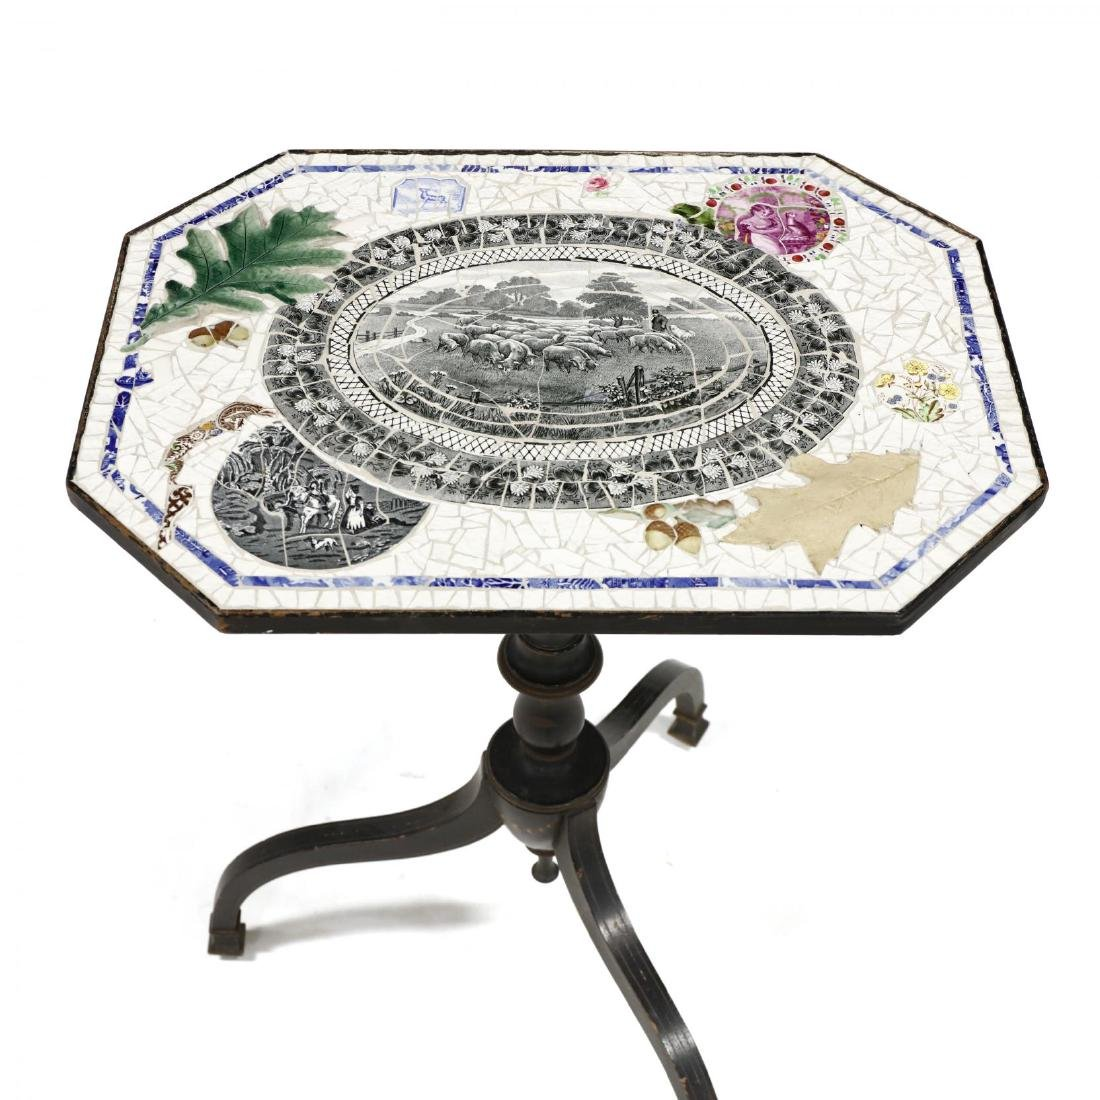 Vintage Mosaic Top Table - 2